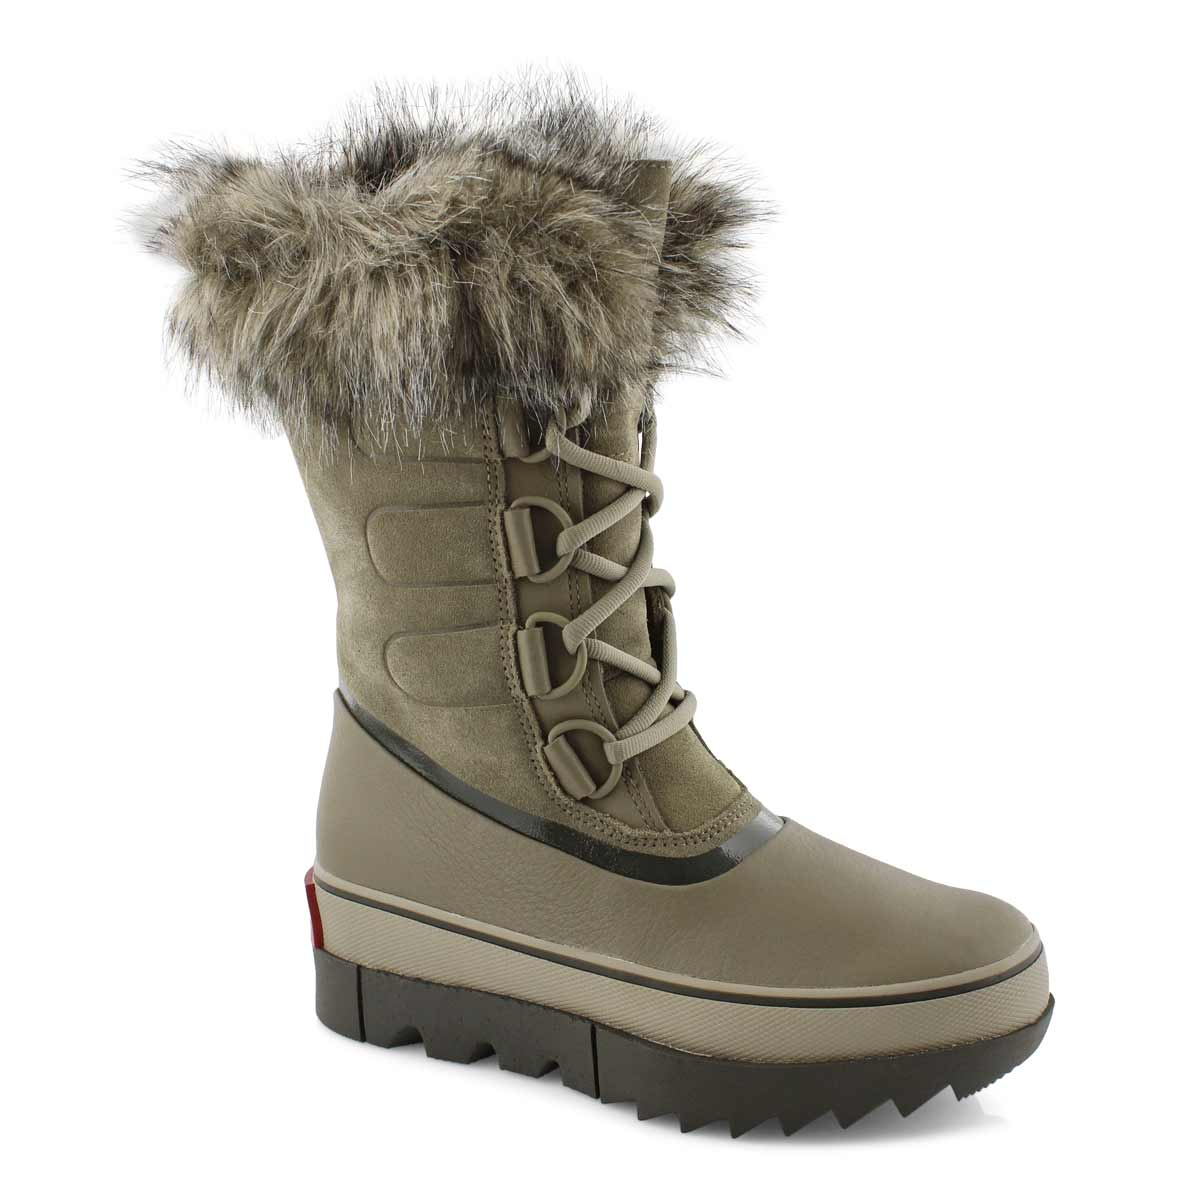 Lds Joan of Arctic Next sage winter boot